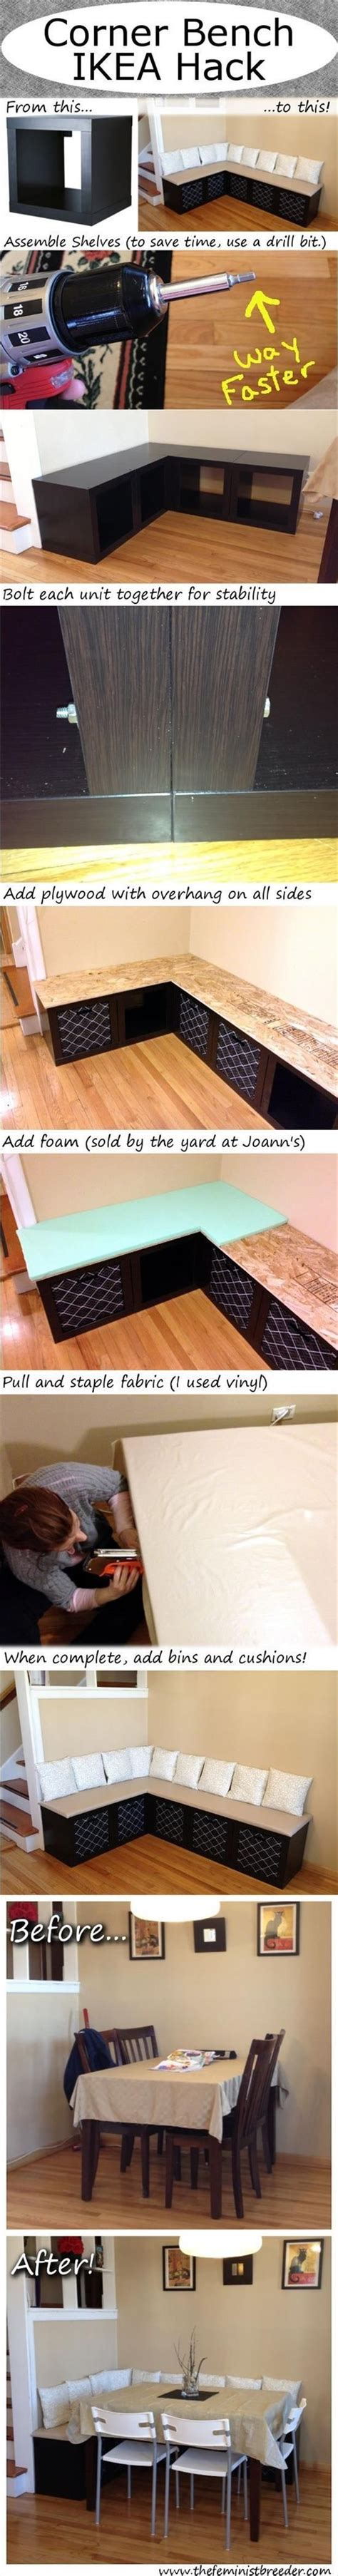 ikea corner bench hack corner bench ikea hack pictures photos and images for